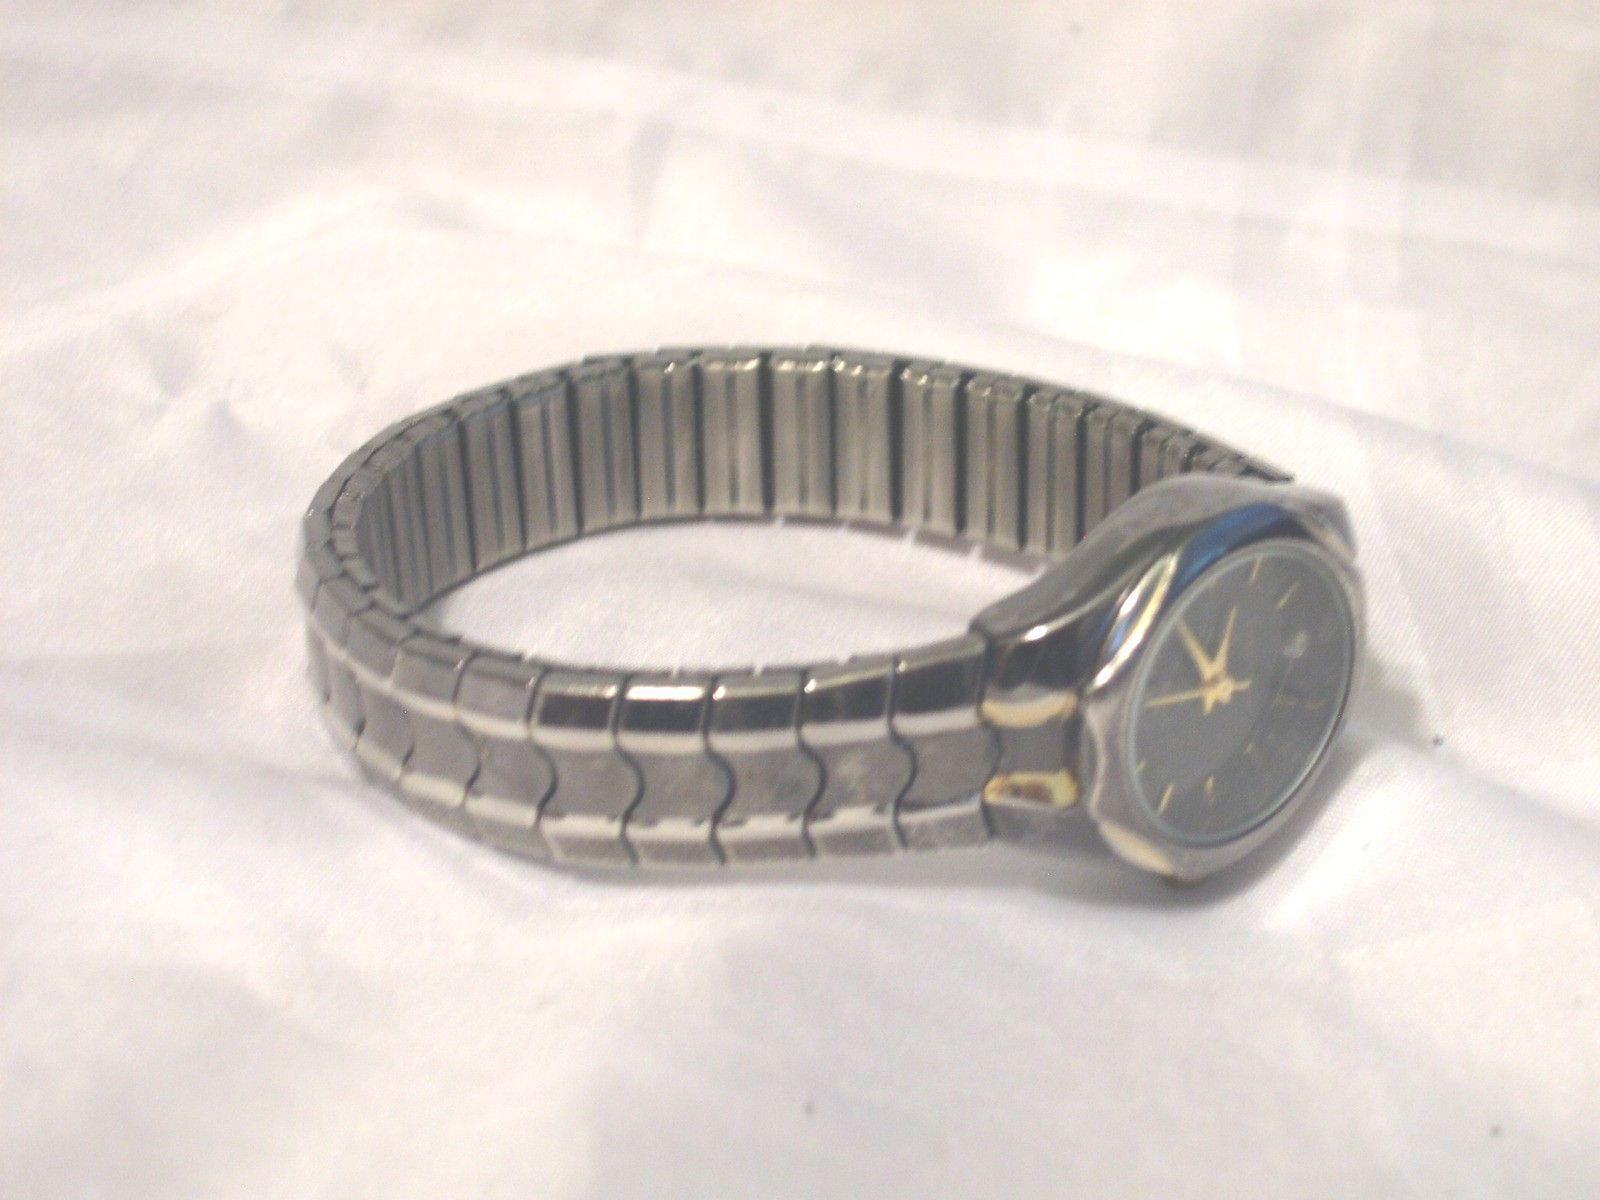 Primary image for L02, Cerentino Ladies Watch, Black & Silver Tone Flex Band